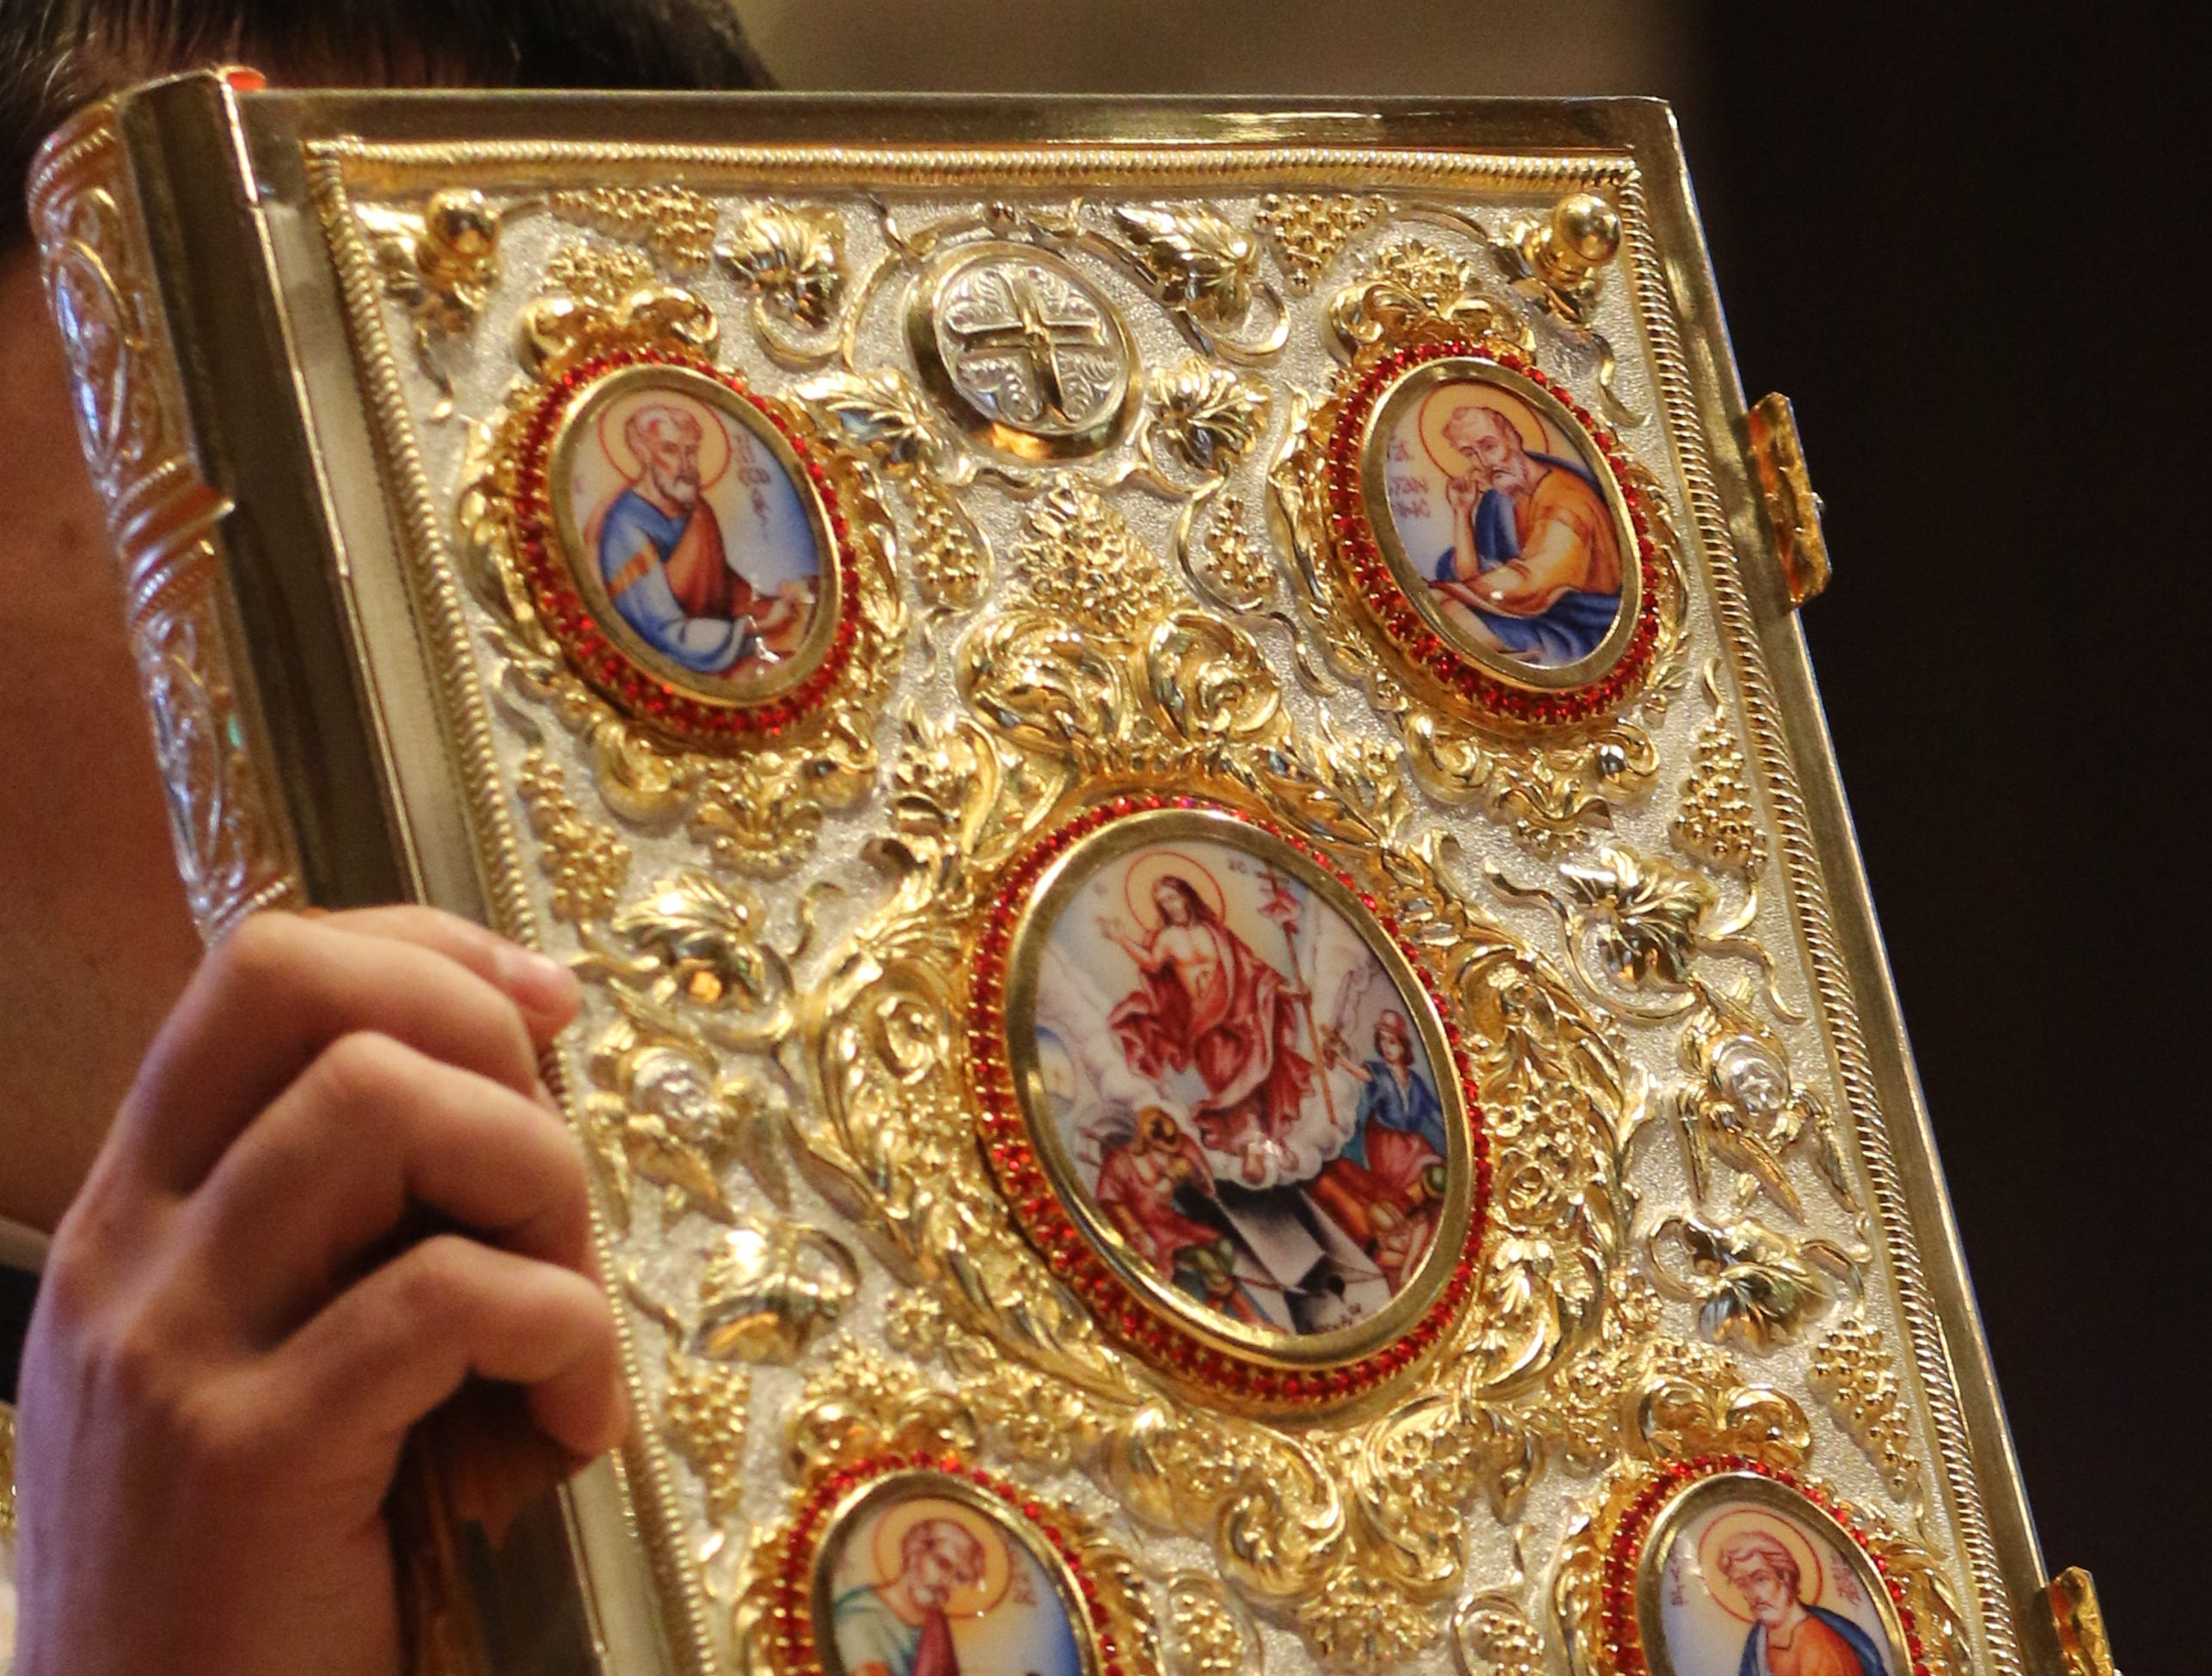 The Christmas Day Divine Liturgy takes place at the Ukrainian Orthodox Holy Ascension Church.  Monday, January 7,  2019